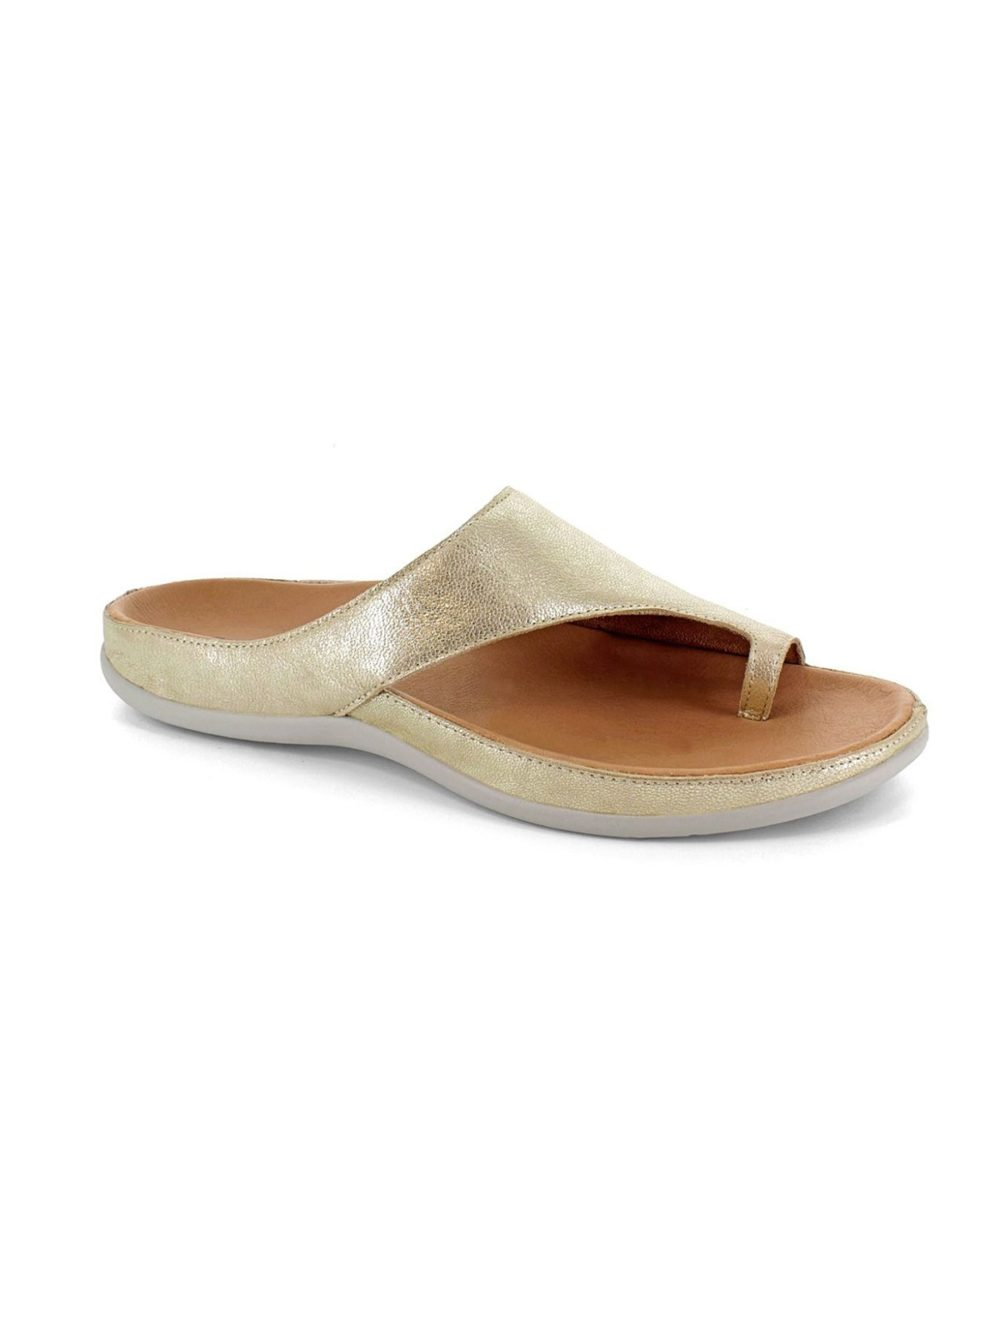 Capri Sandal Strive Footwear Katie Kerr Women's Clothing